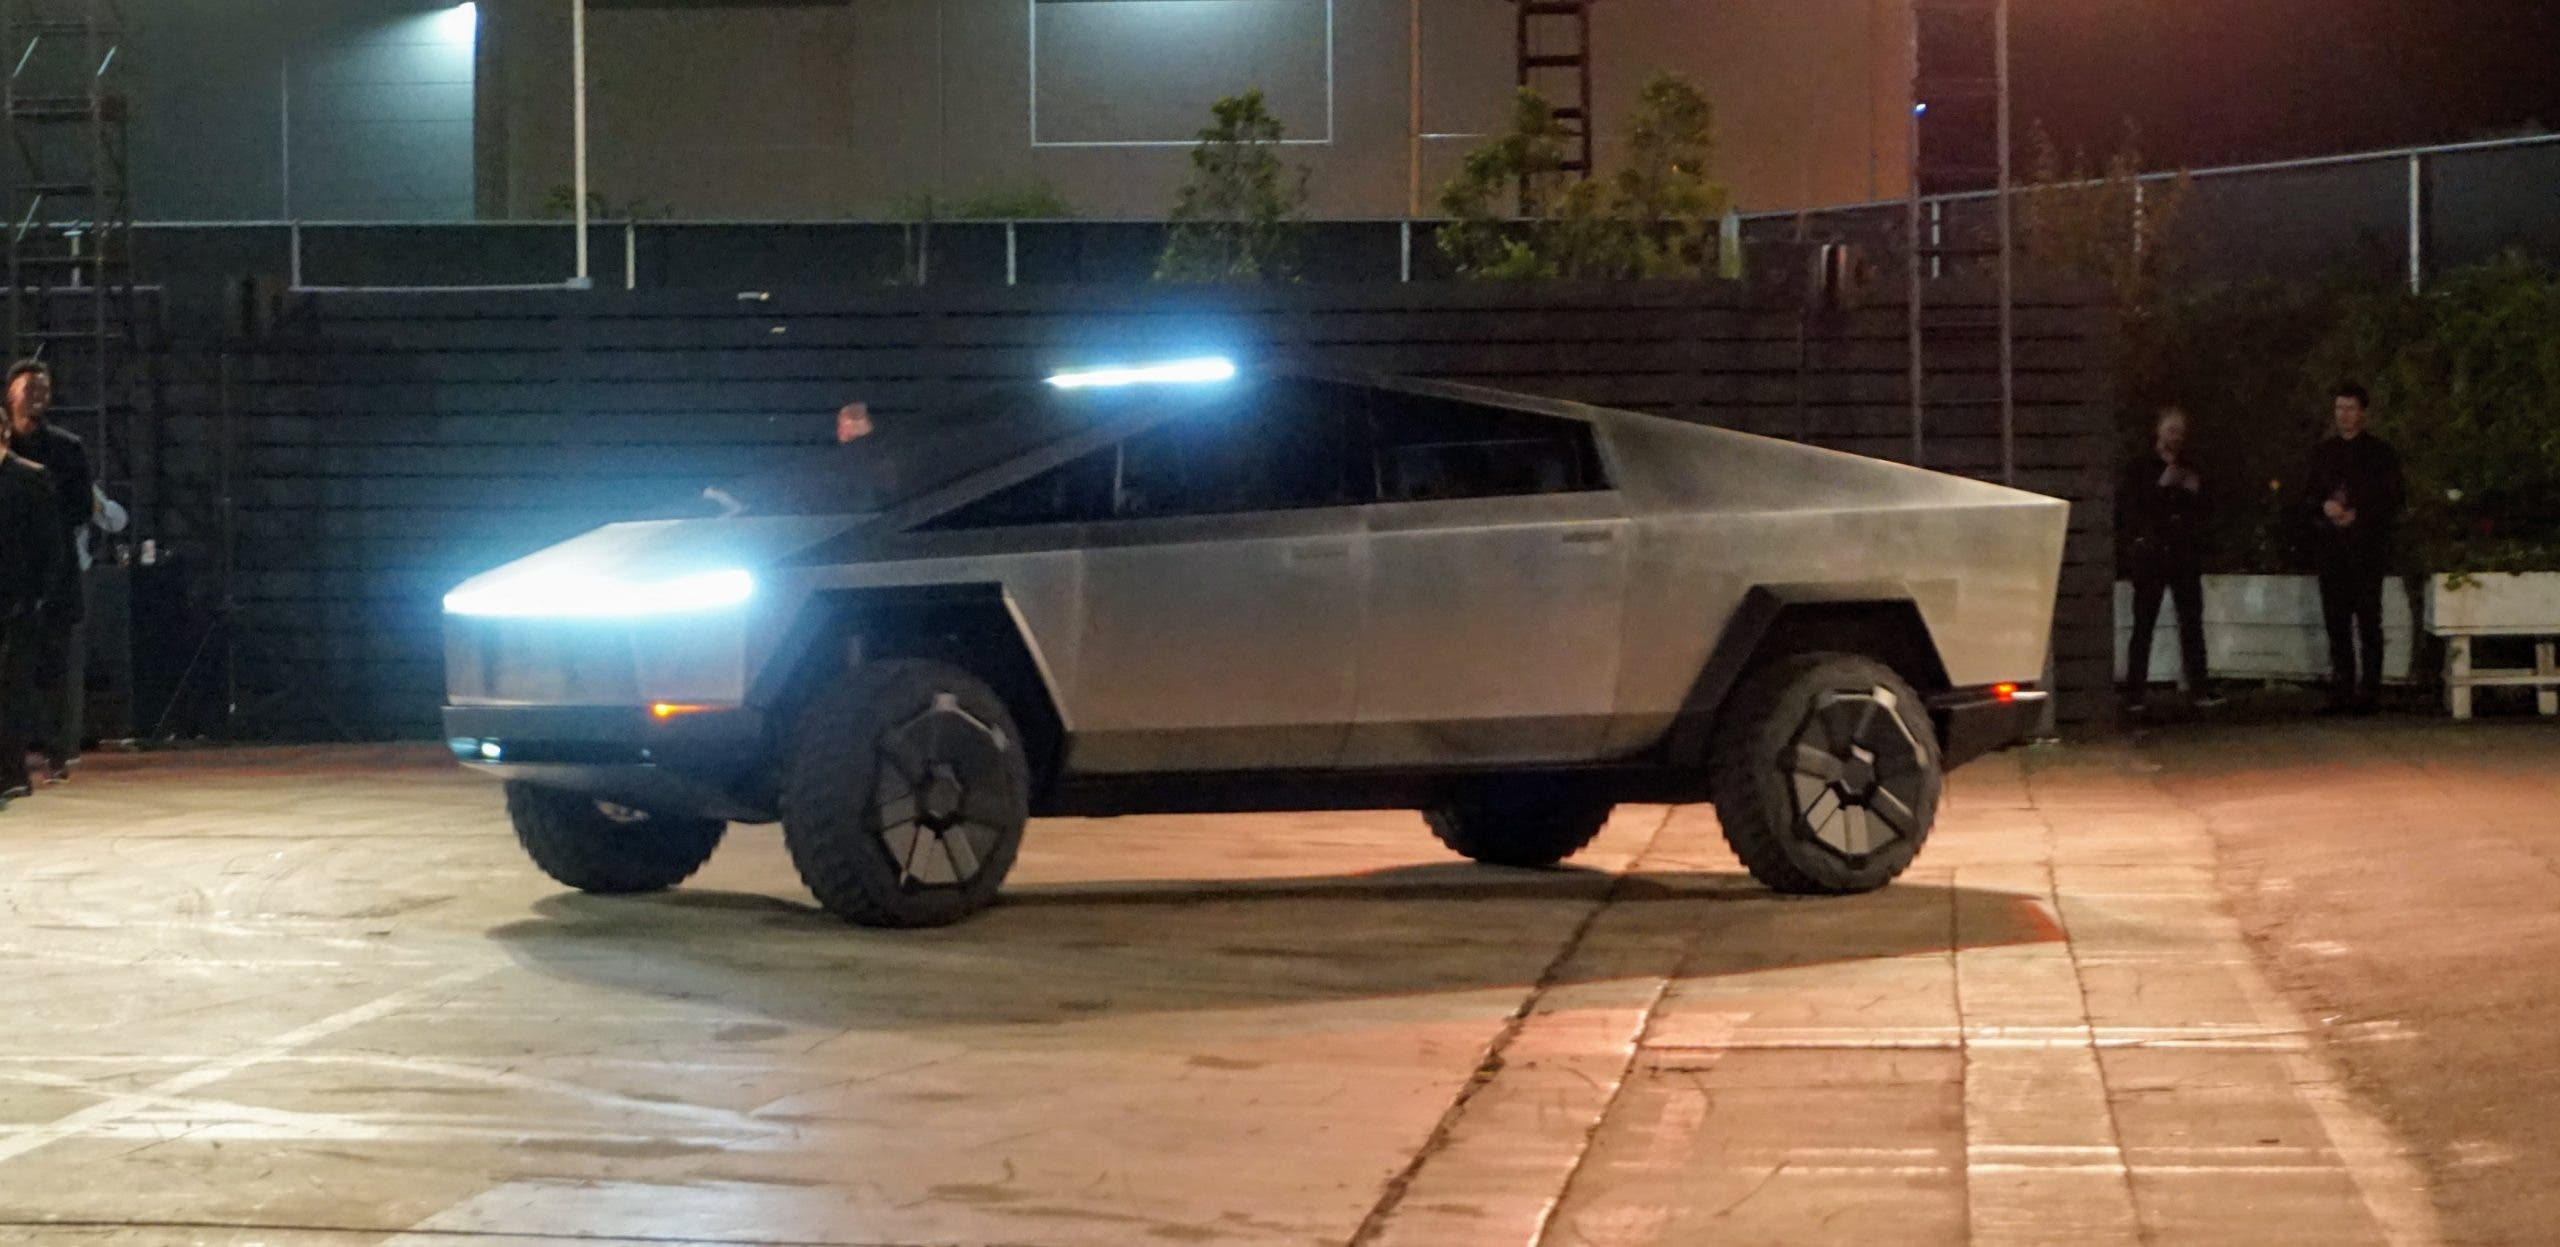 How To Make A Car Roblox 2019 Lol Elon S Tesla Cybertruck Just Turned Manly Man Trucks Into Princess Wagons